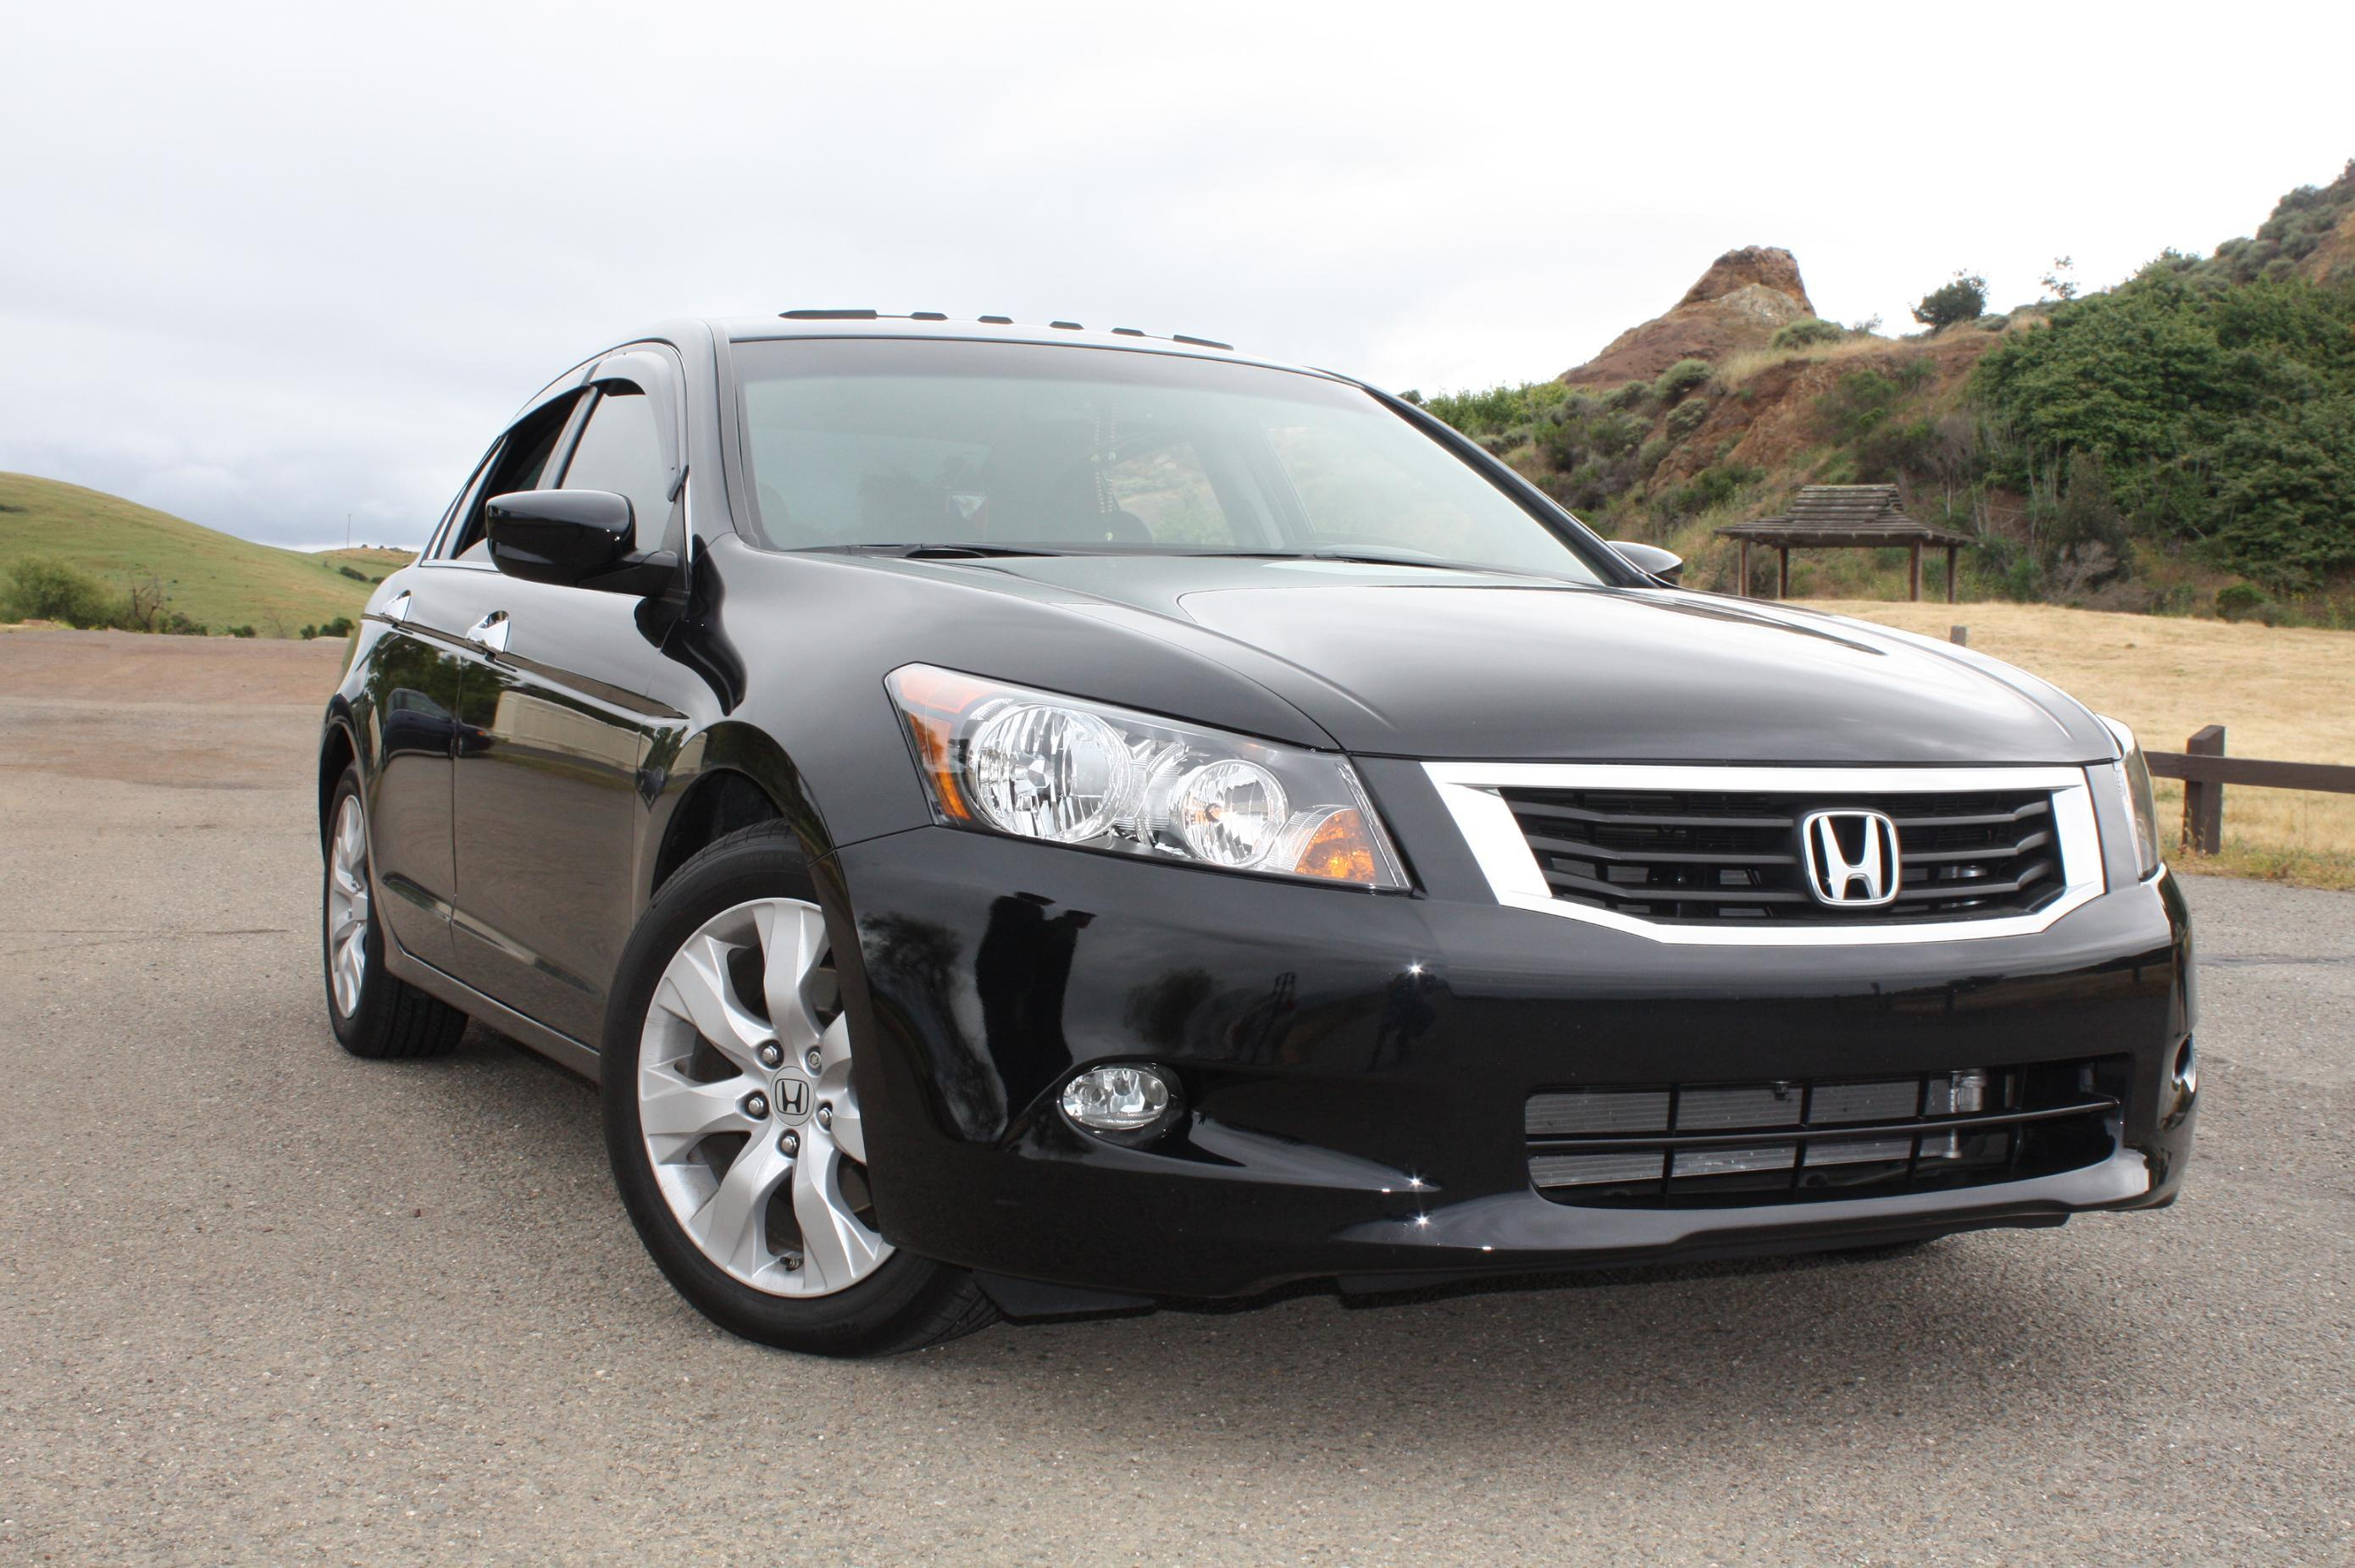 of brings legendary accord levels exl en to s and allnew remarkable all agility honda segment intermediate sophistication segments release nameplate midsize l new news efficiency luxury